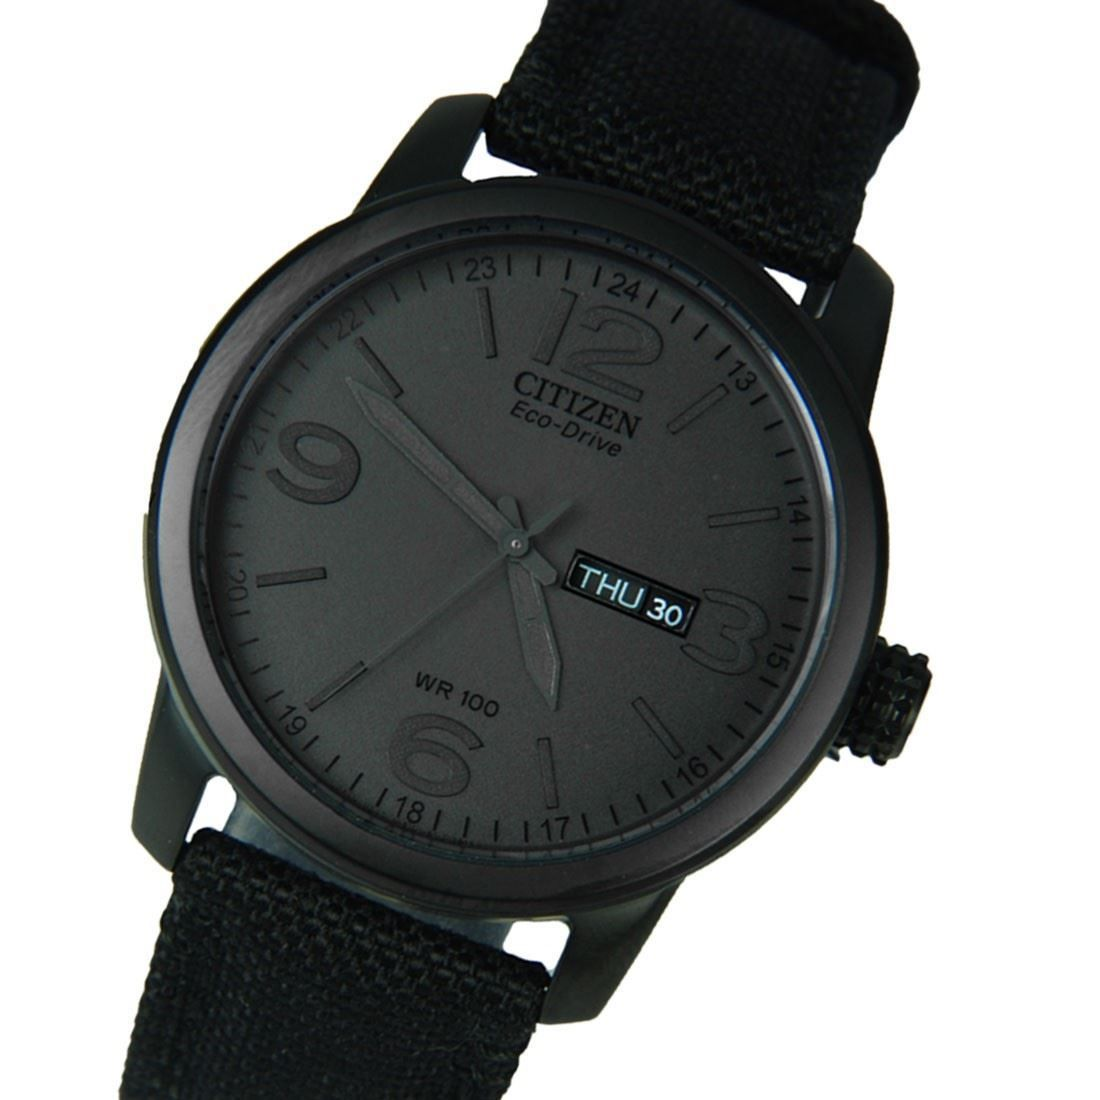 bm8475 bm8475 00f citizen analog dress eco drive watch dresses bm8475 bm8475 00f citizen analog dress eco drive watch